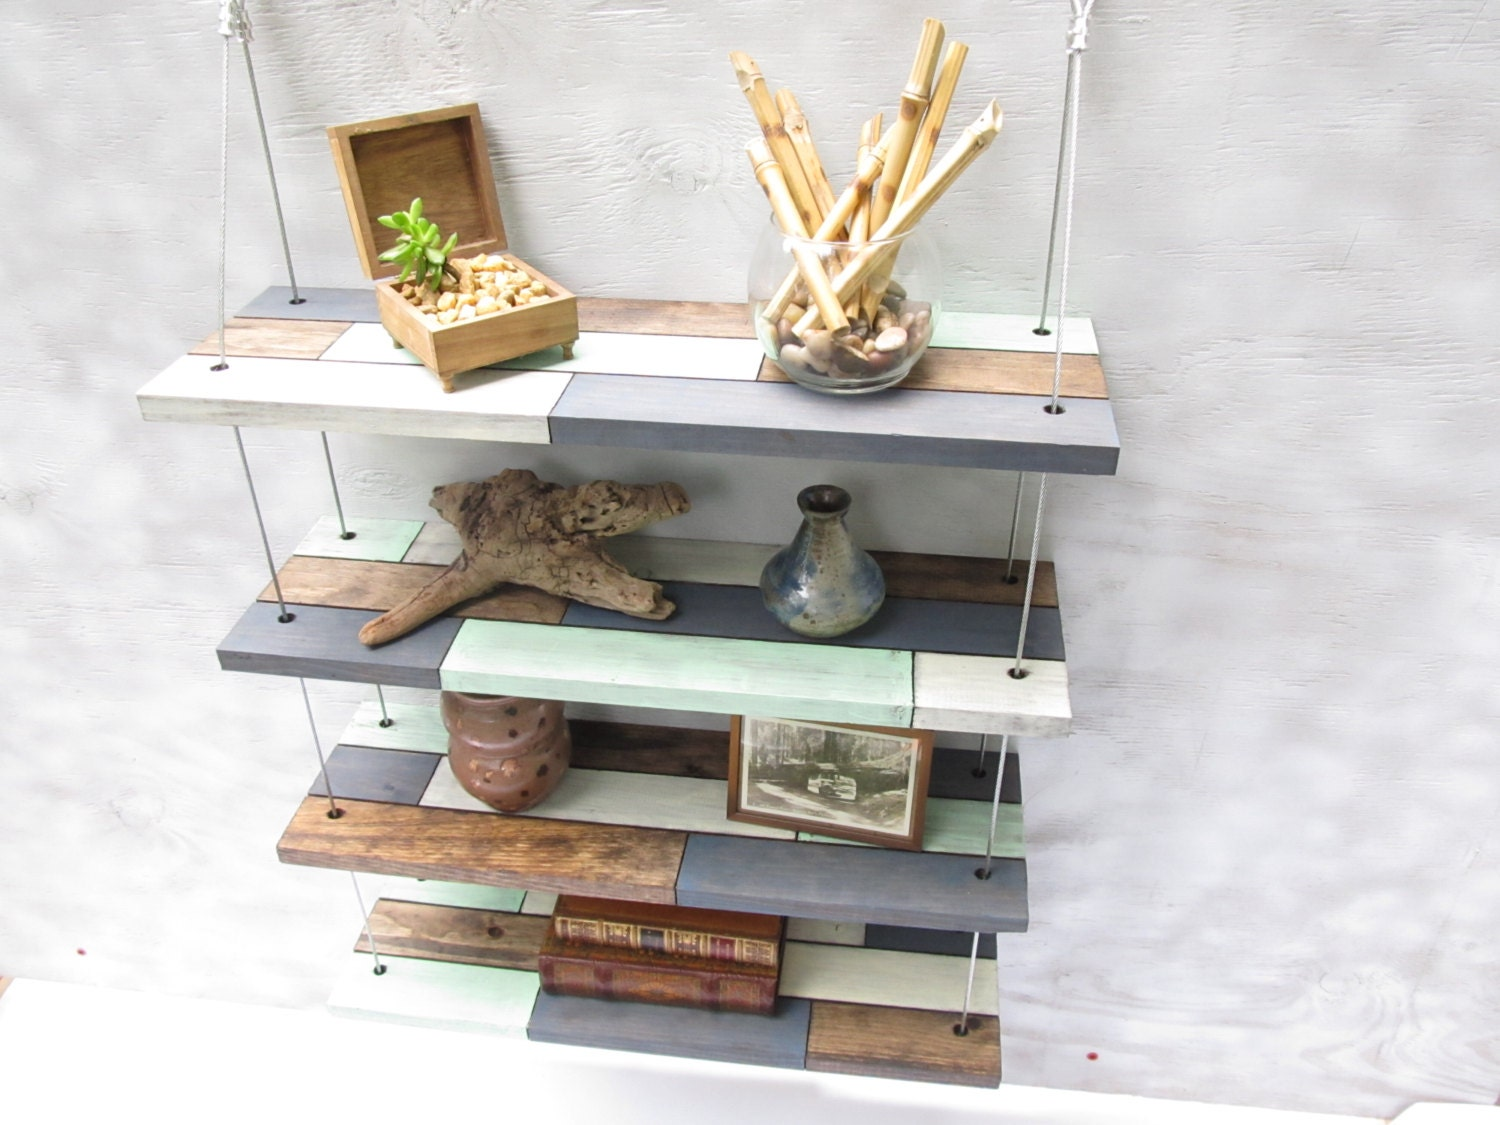 Modern Floating Shelves Decorating Ideas: Wall Shelves Industrial Shelves Floating Shelveshome Decor